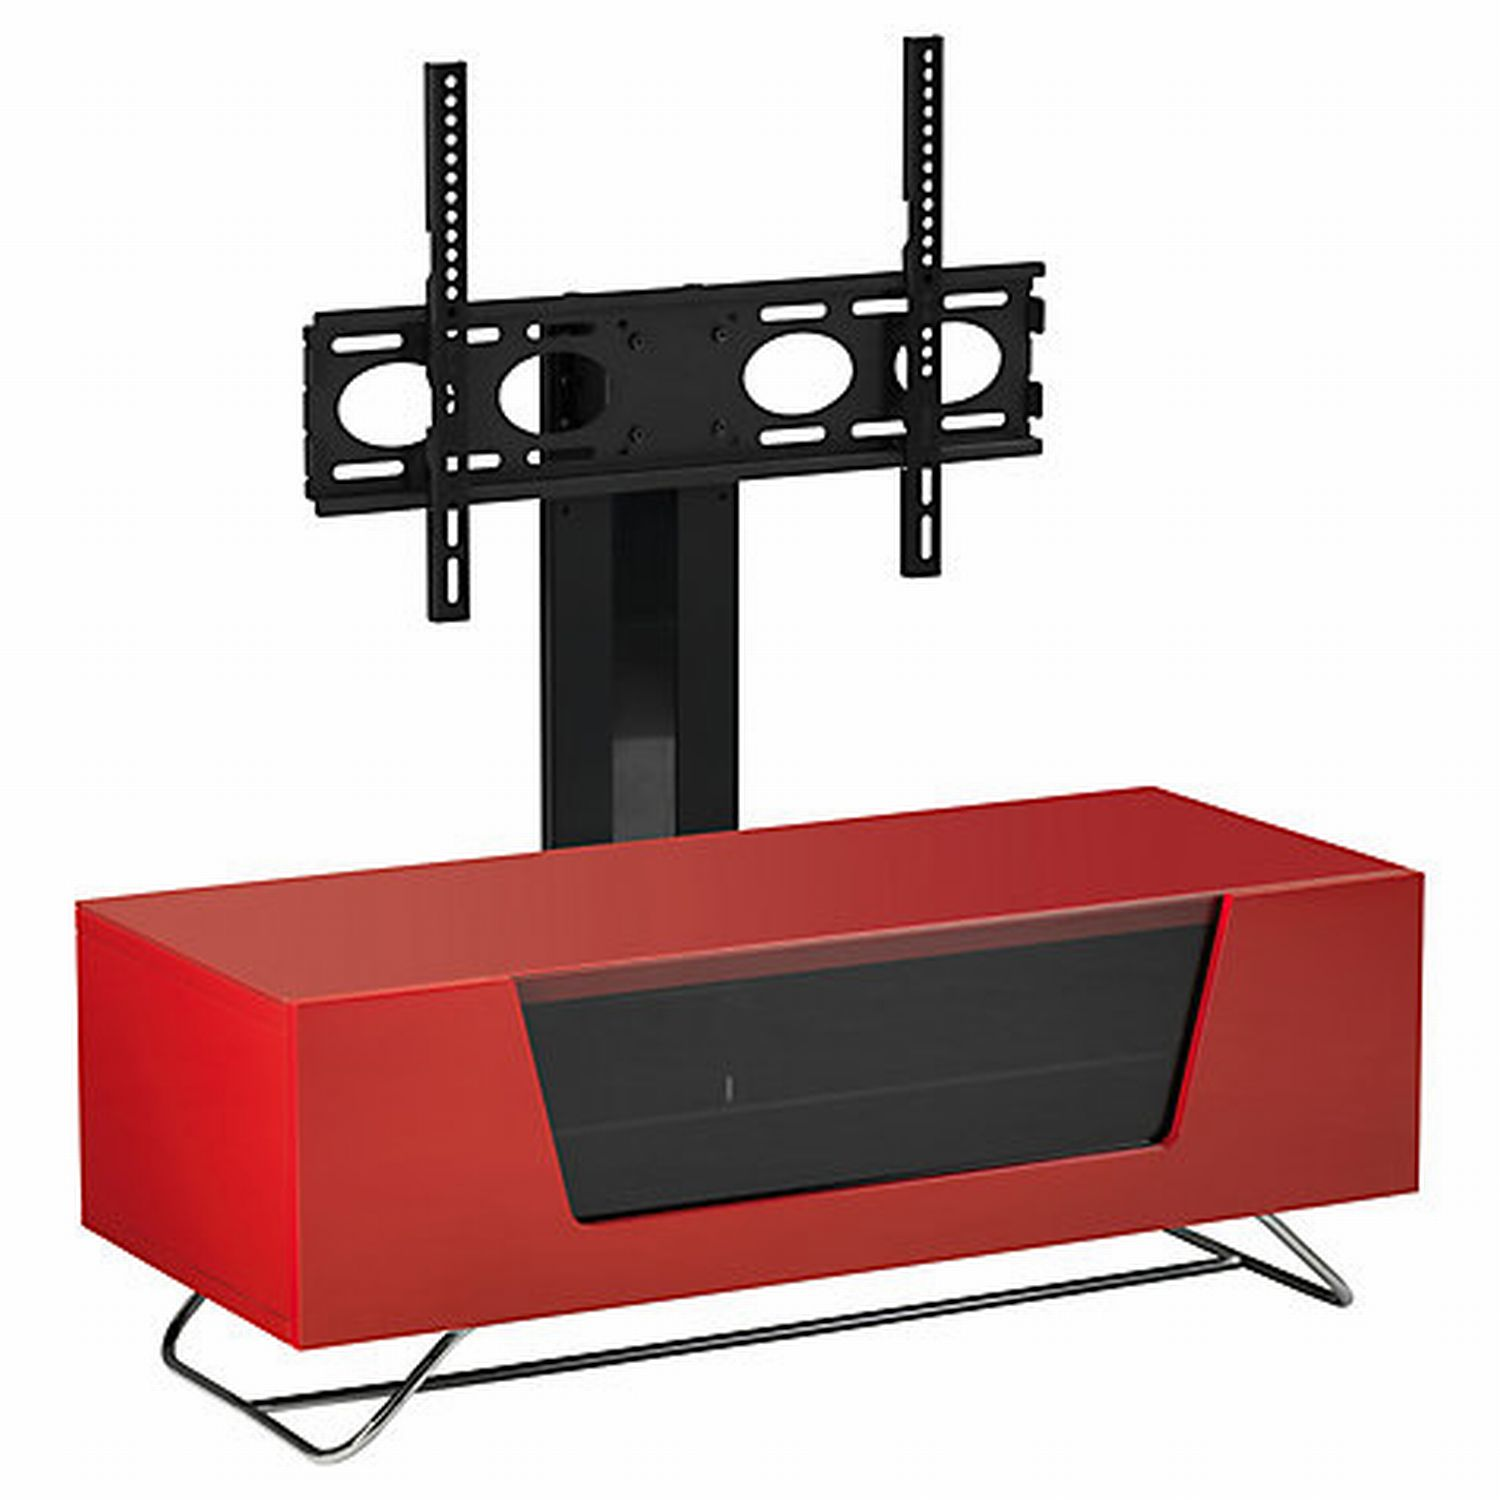 Image of Casa Chromium Cantilever Hg Red TV Stand